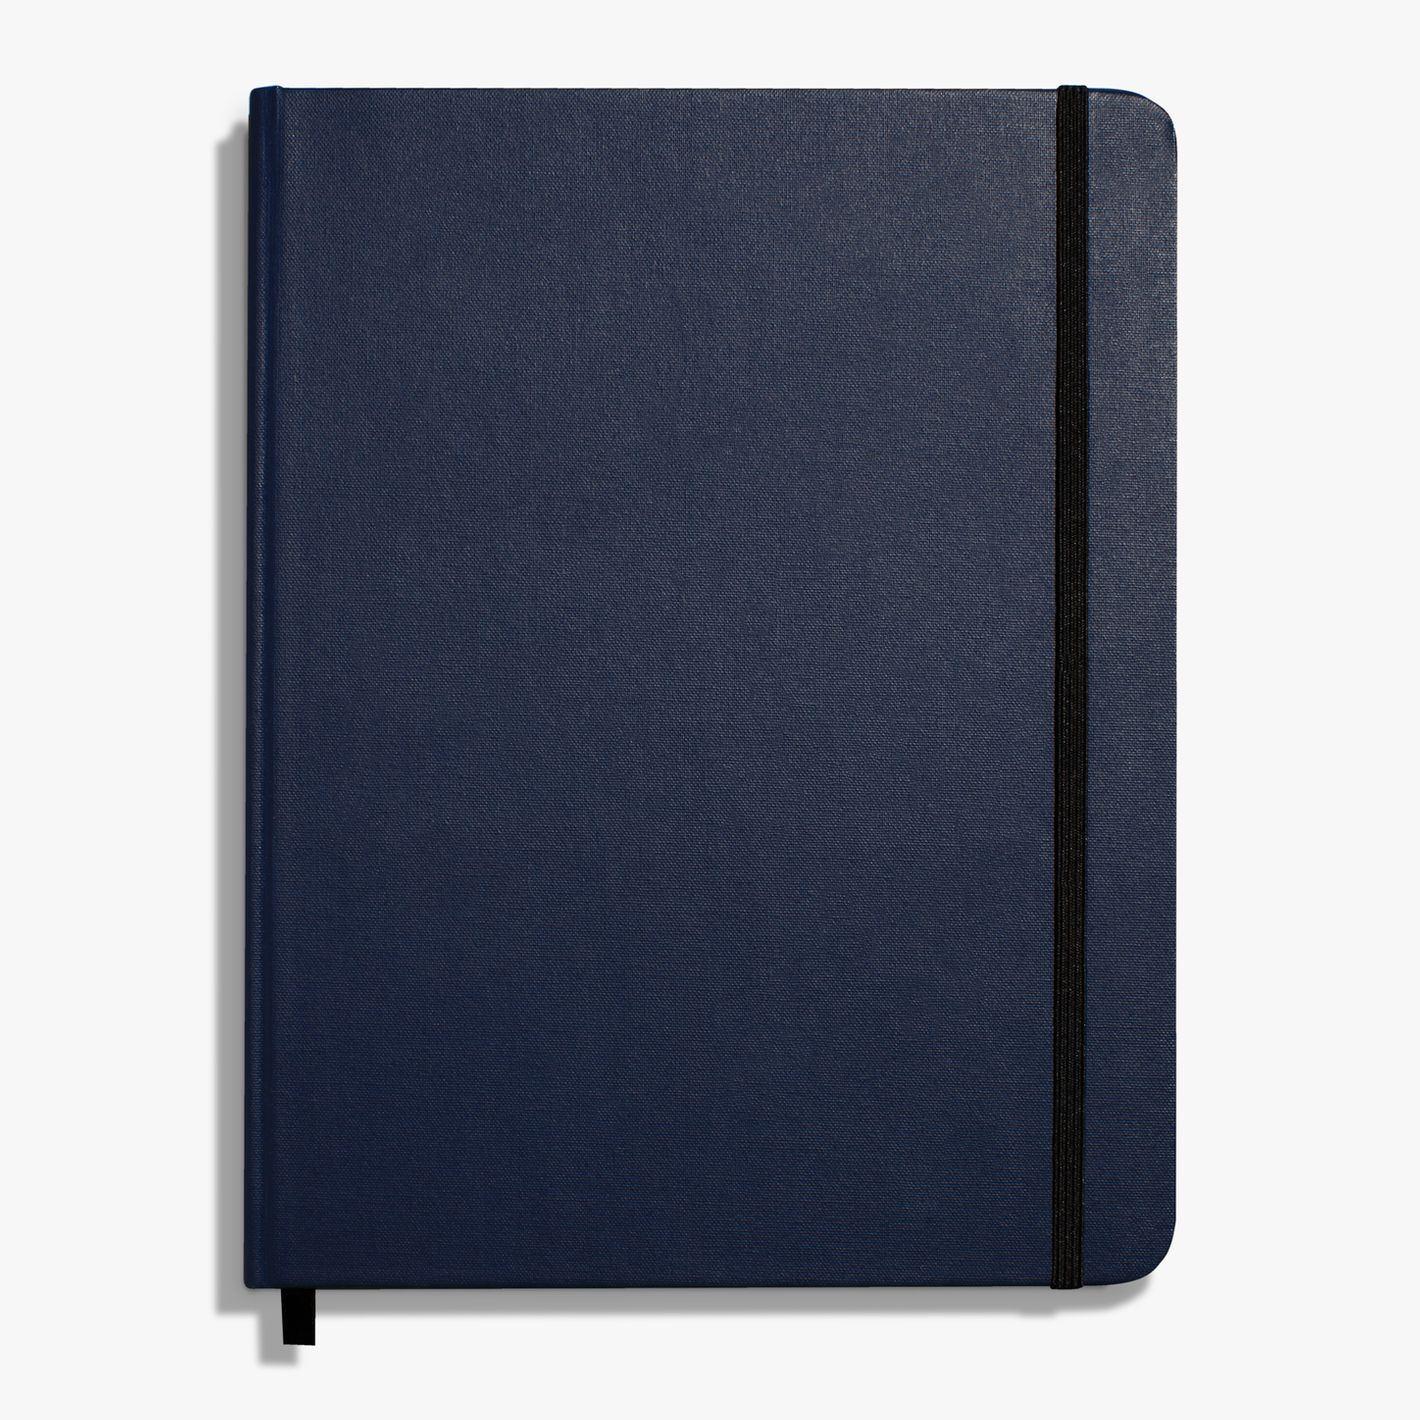 Shinola Large Hard Linen Journal